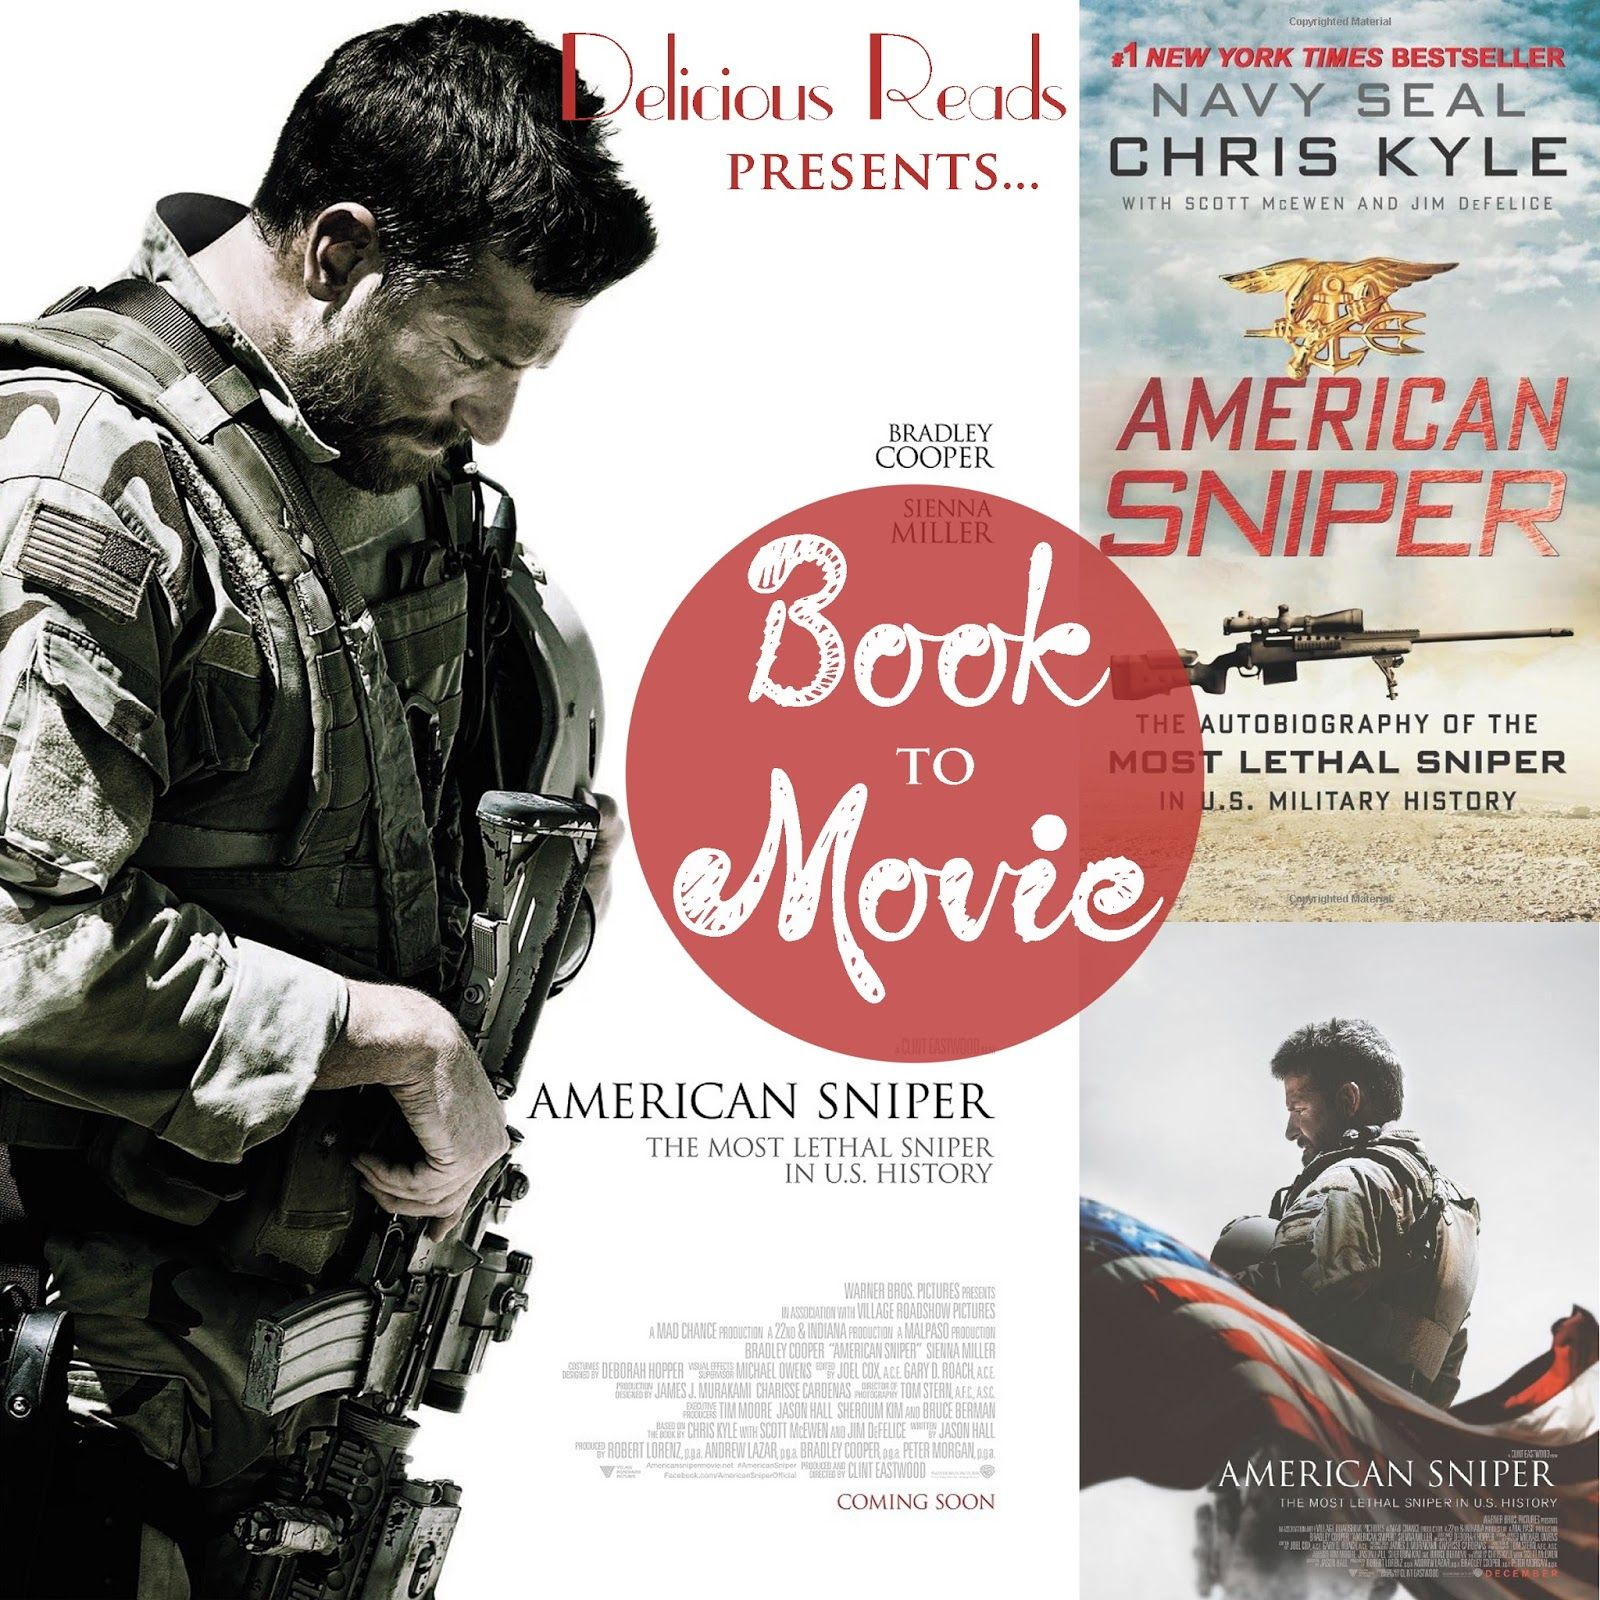 American Sniper {Book to Movie} starring Bradley Cooper